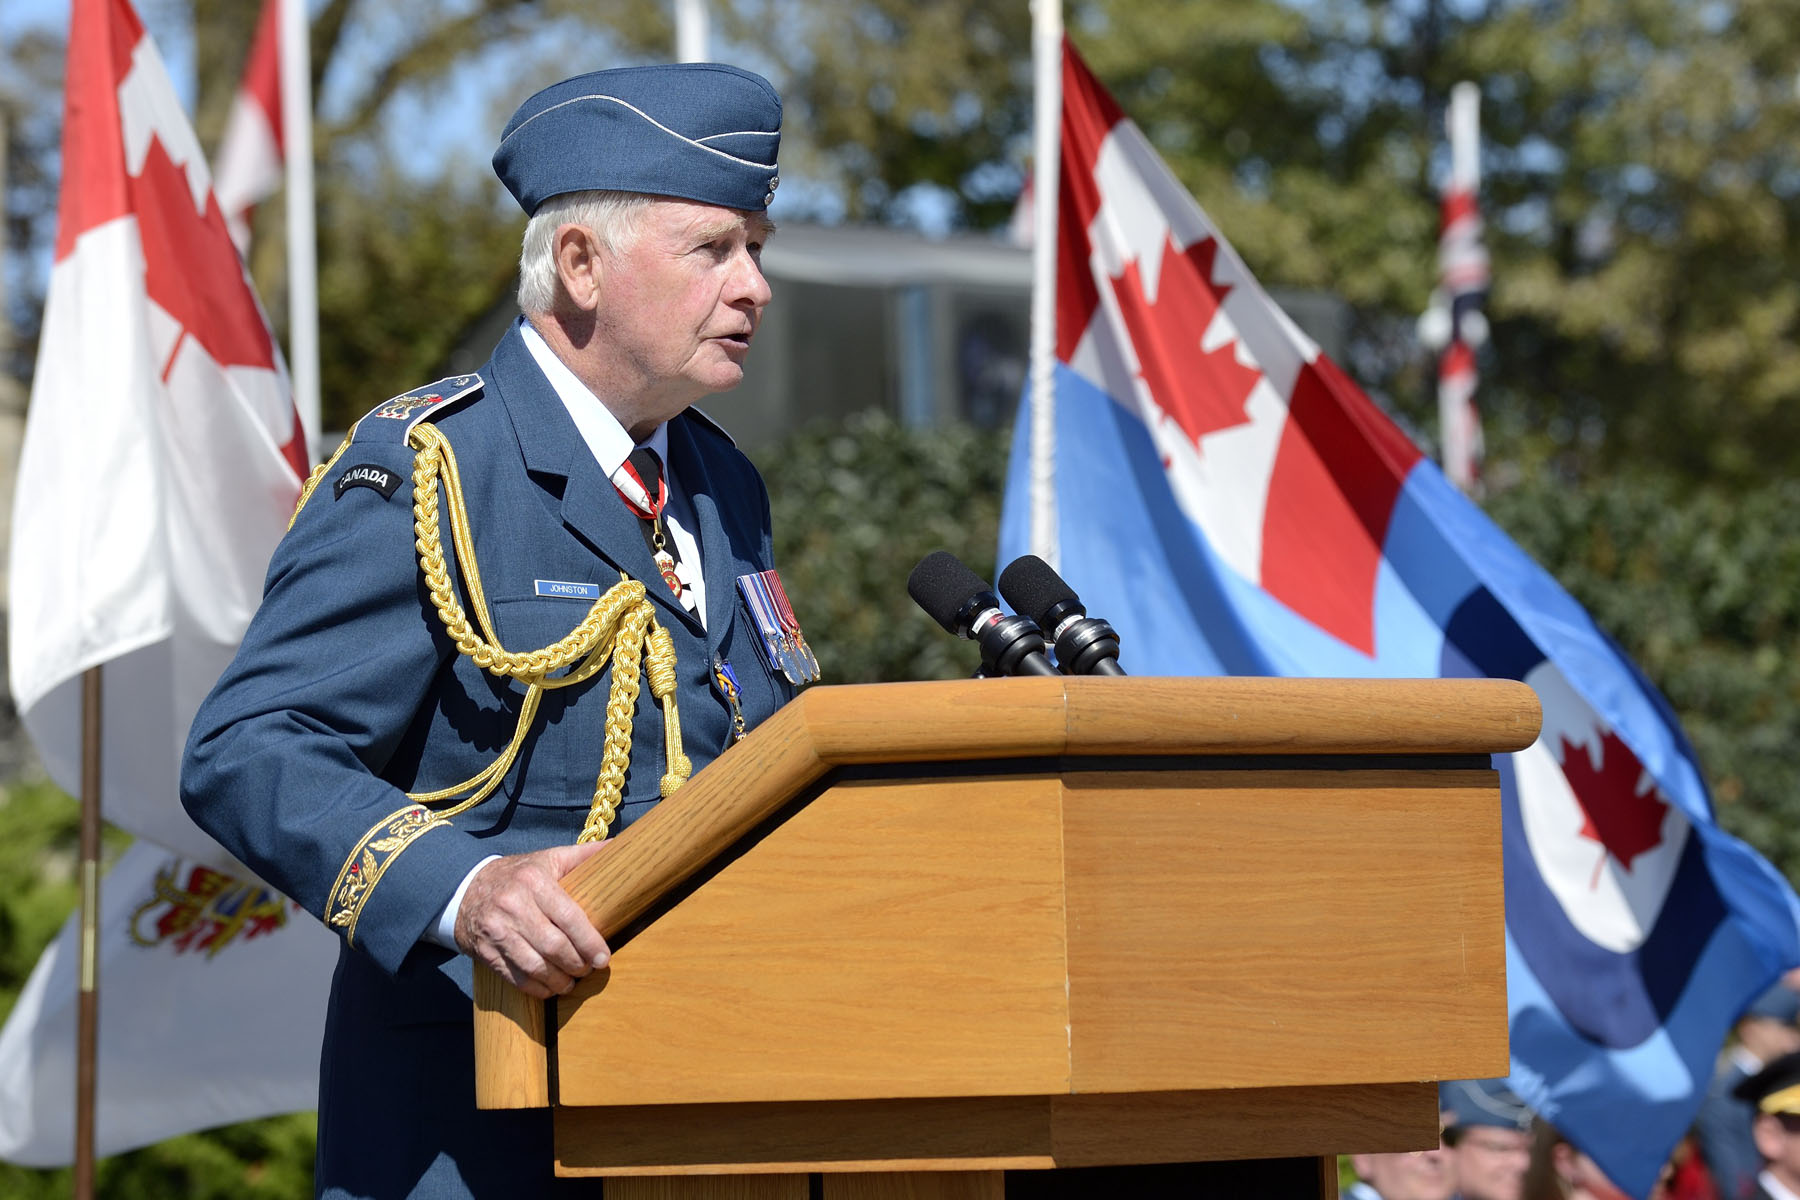 """Without the great courage, ingenuity and skill of those who fought the air war, as well as the remarkable resilience of people on the home front, things might have turned out very differently. As governor general and commander-in-chief of Canada, I'm grateful for this opportunity to mark this milestone anniversary,"" said His Excellency."